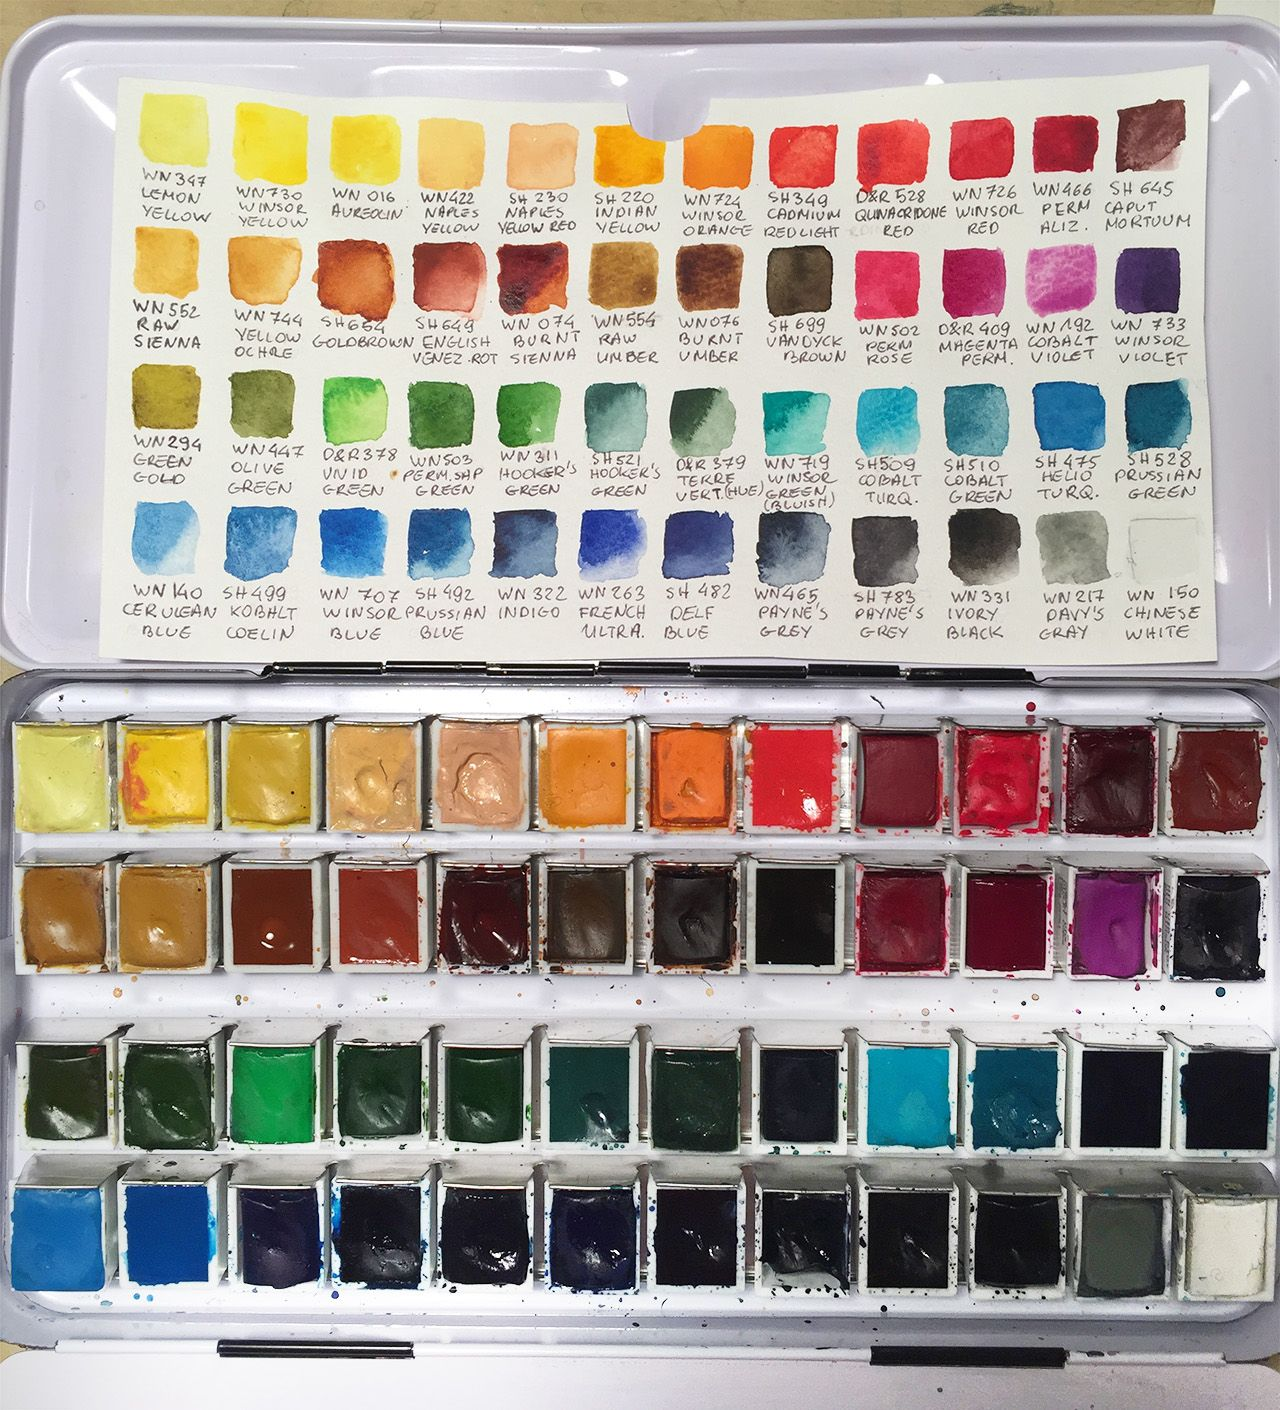 hello! which brand of watercolor are you using?      I bought the standard 24 colour set from Winsor and Newton (artist series not the Cotman), but felt it lacking, so I bought a bigger box (48 colours) and added some colours, replaced some also. Now it's about 28 Winsor&Newton, 16 Schmincke, and 4 fromDaler Rowney (I like the Schmincke ones the best probably) This is a nice way to complete your own set - while you paint you discover what additional colours you want, buy and mix....